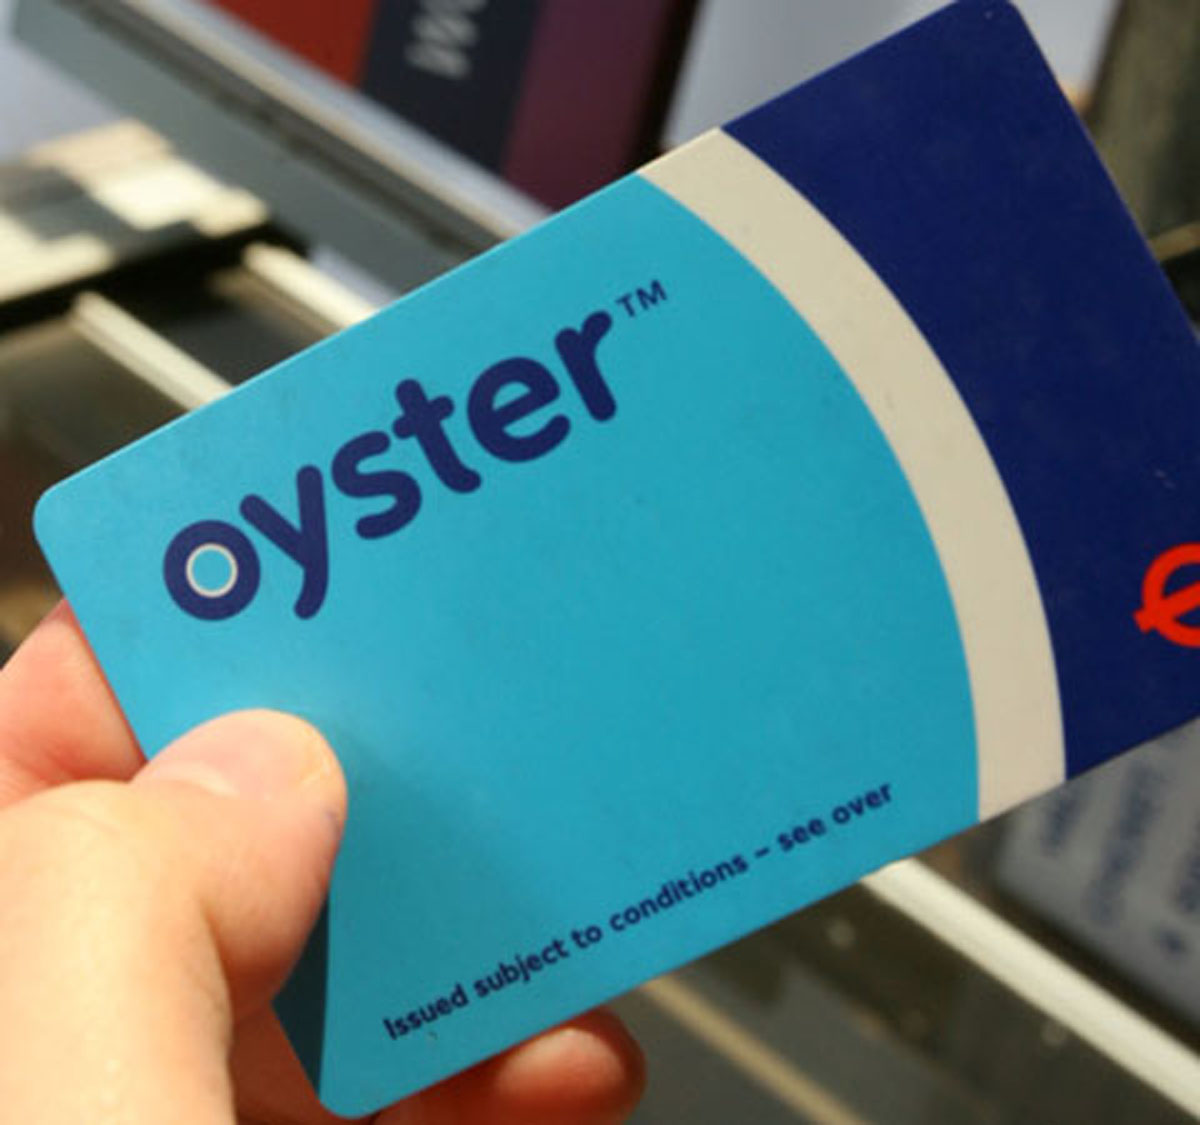 Oyster users will continue to be overcharged